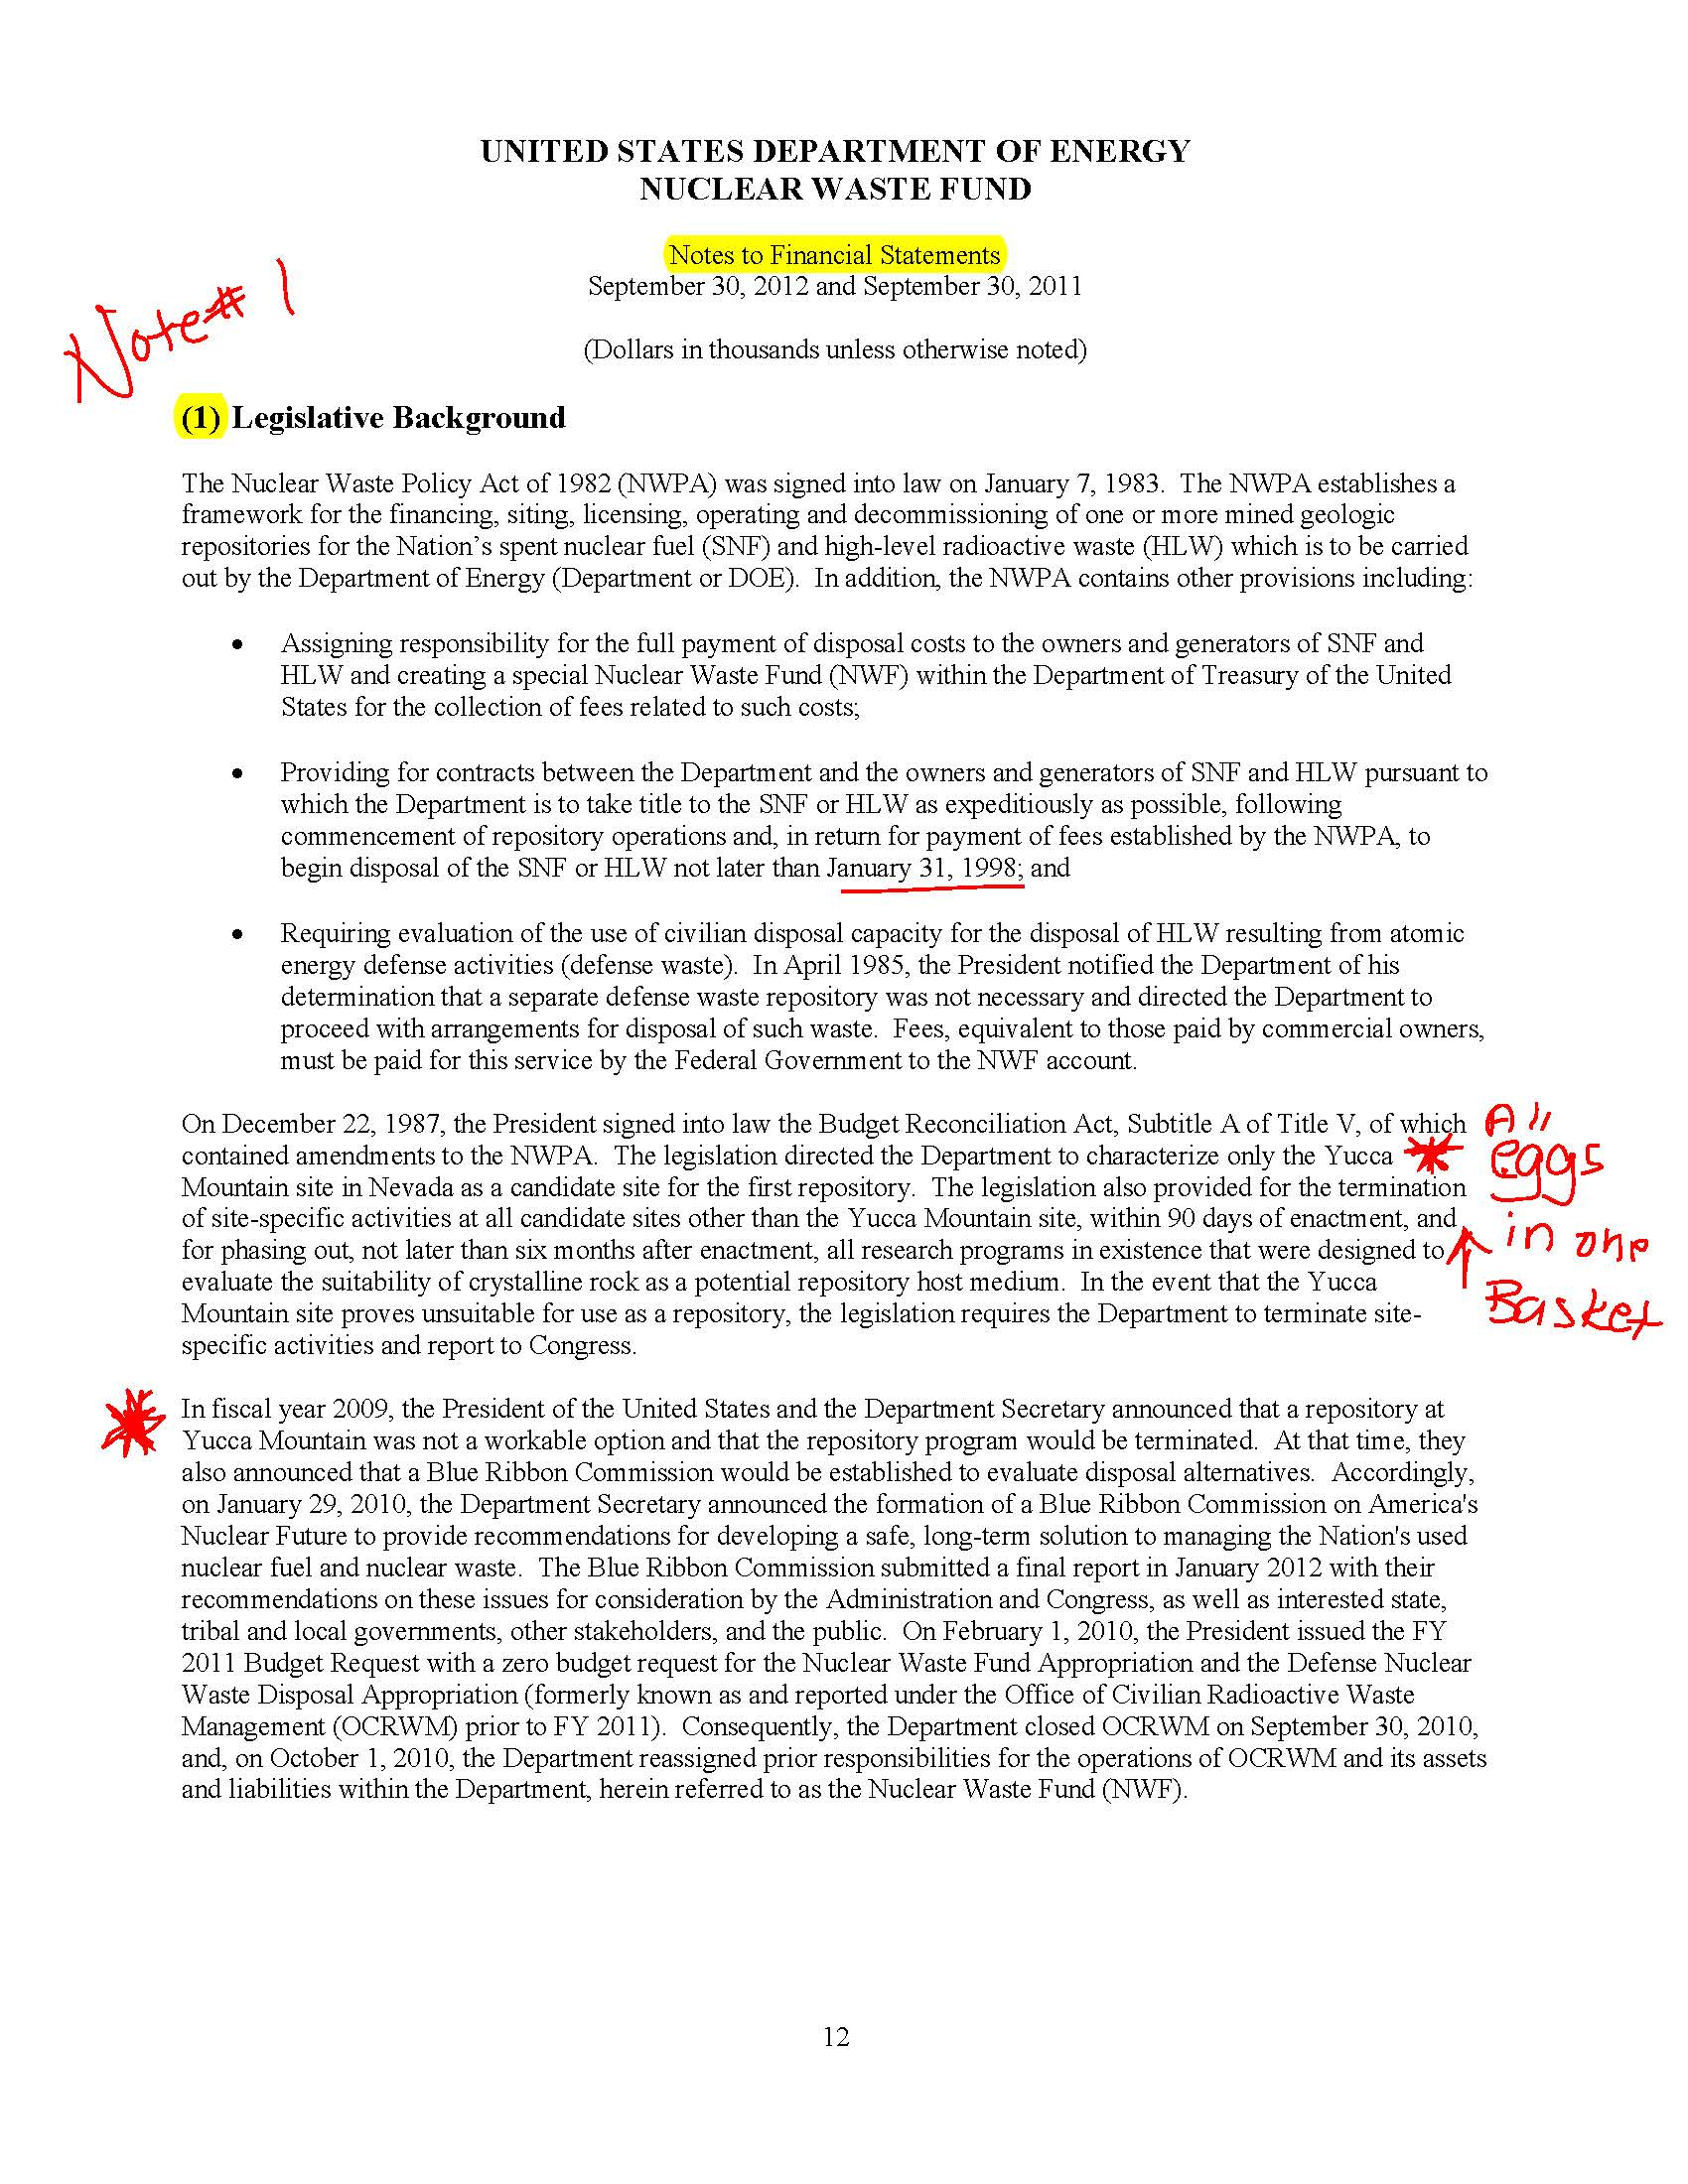 NUKES-KPMG-ACCTG 31 pager_Page_14